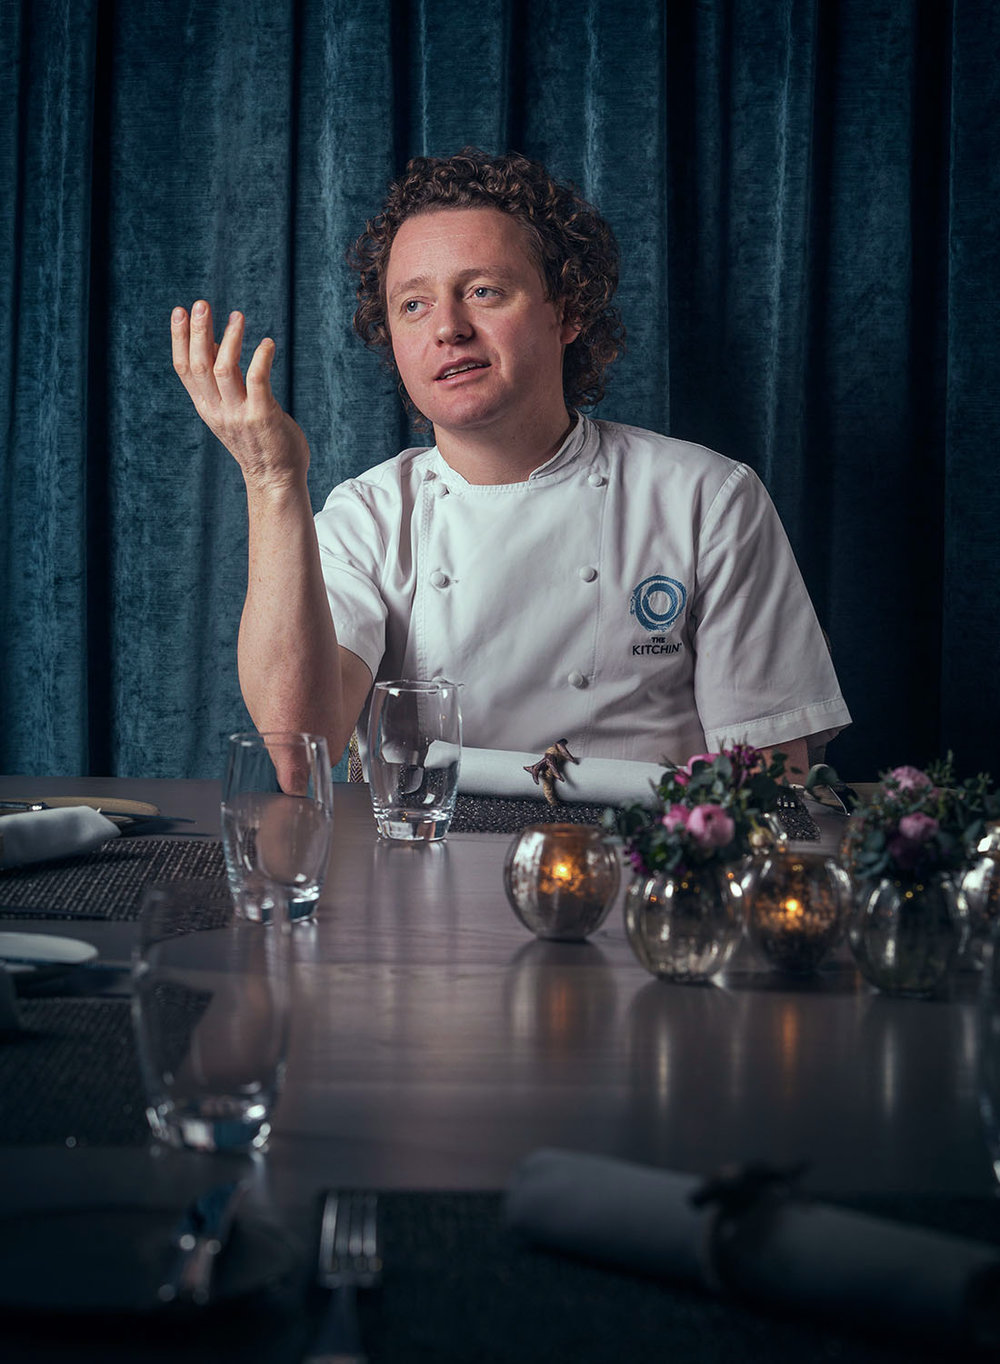 Chef Tom Kitchin - for  The Caterer magazine.